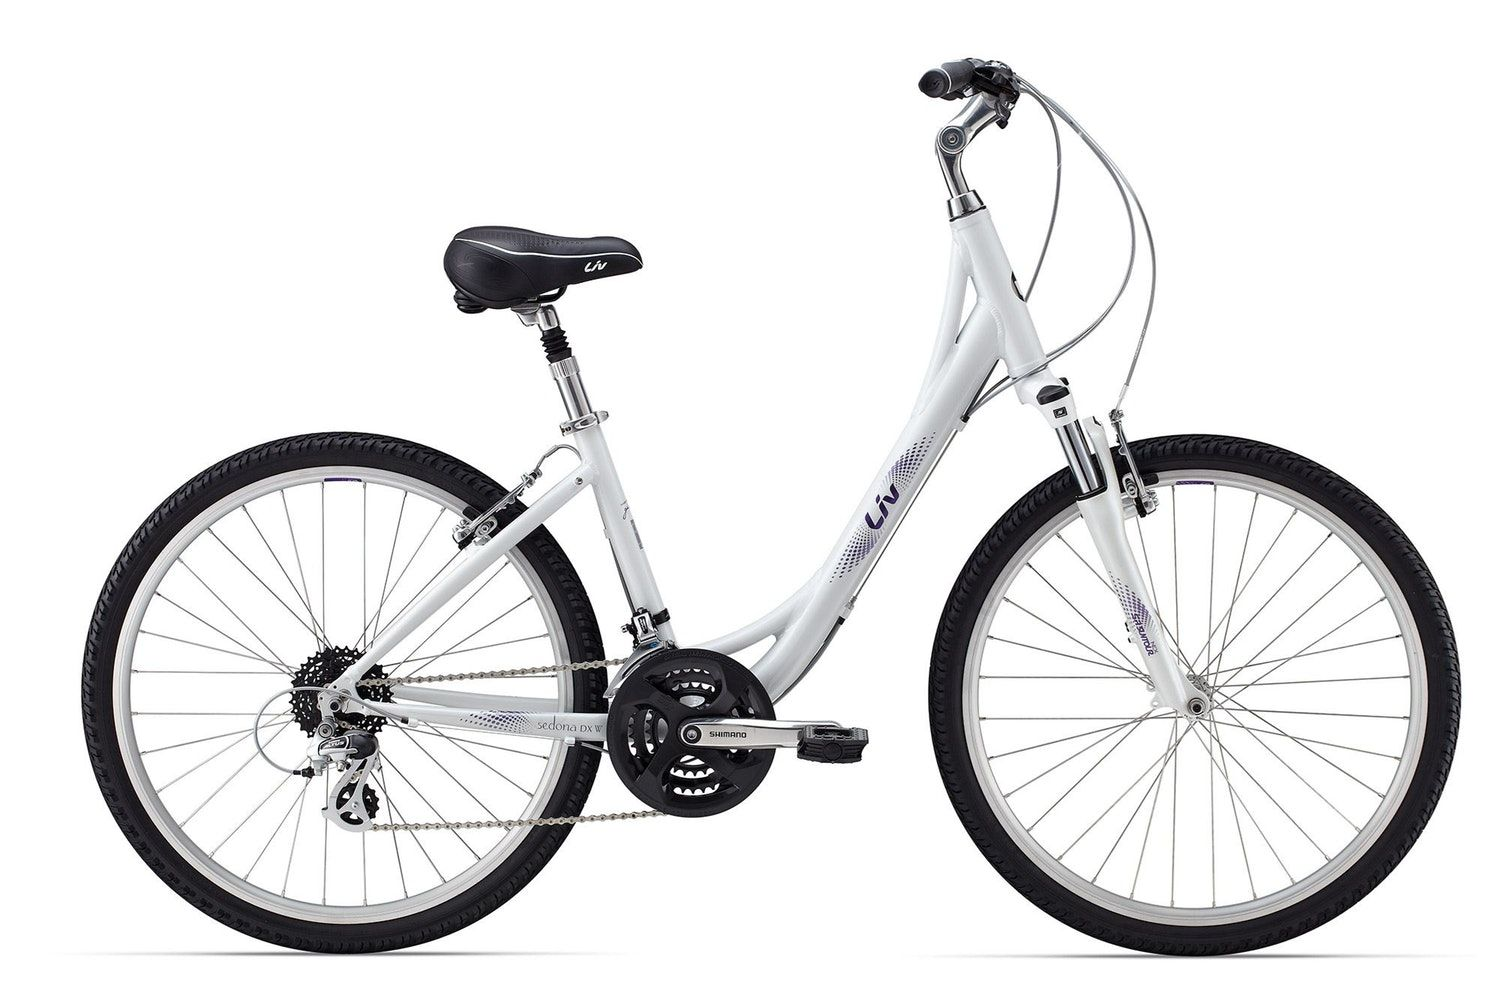 With A Lightweight Aluminum Frame And Smooth Rolling But Durable 26 Inch Mountain Bike Style Wheels Sedona W Is Ideal For B Hybrid Bike Giant Bicycles Bicycle